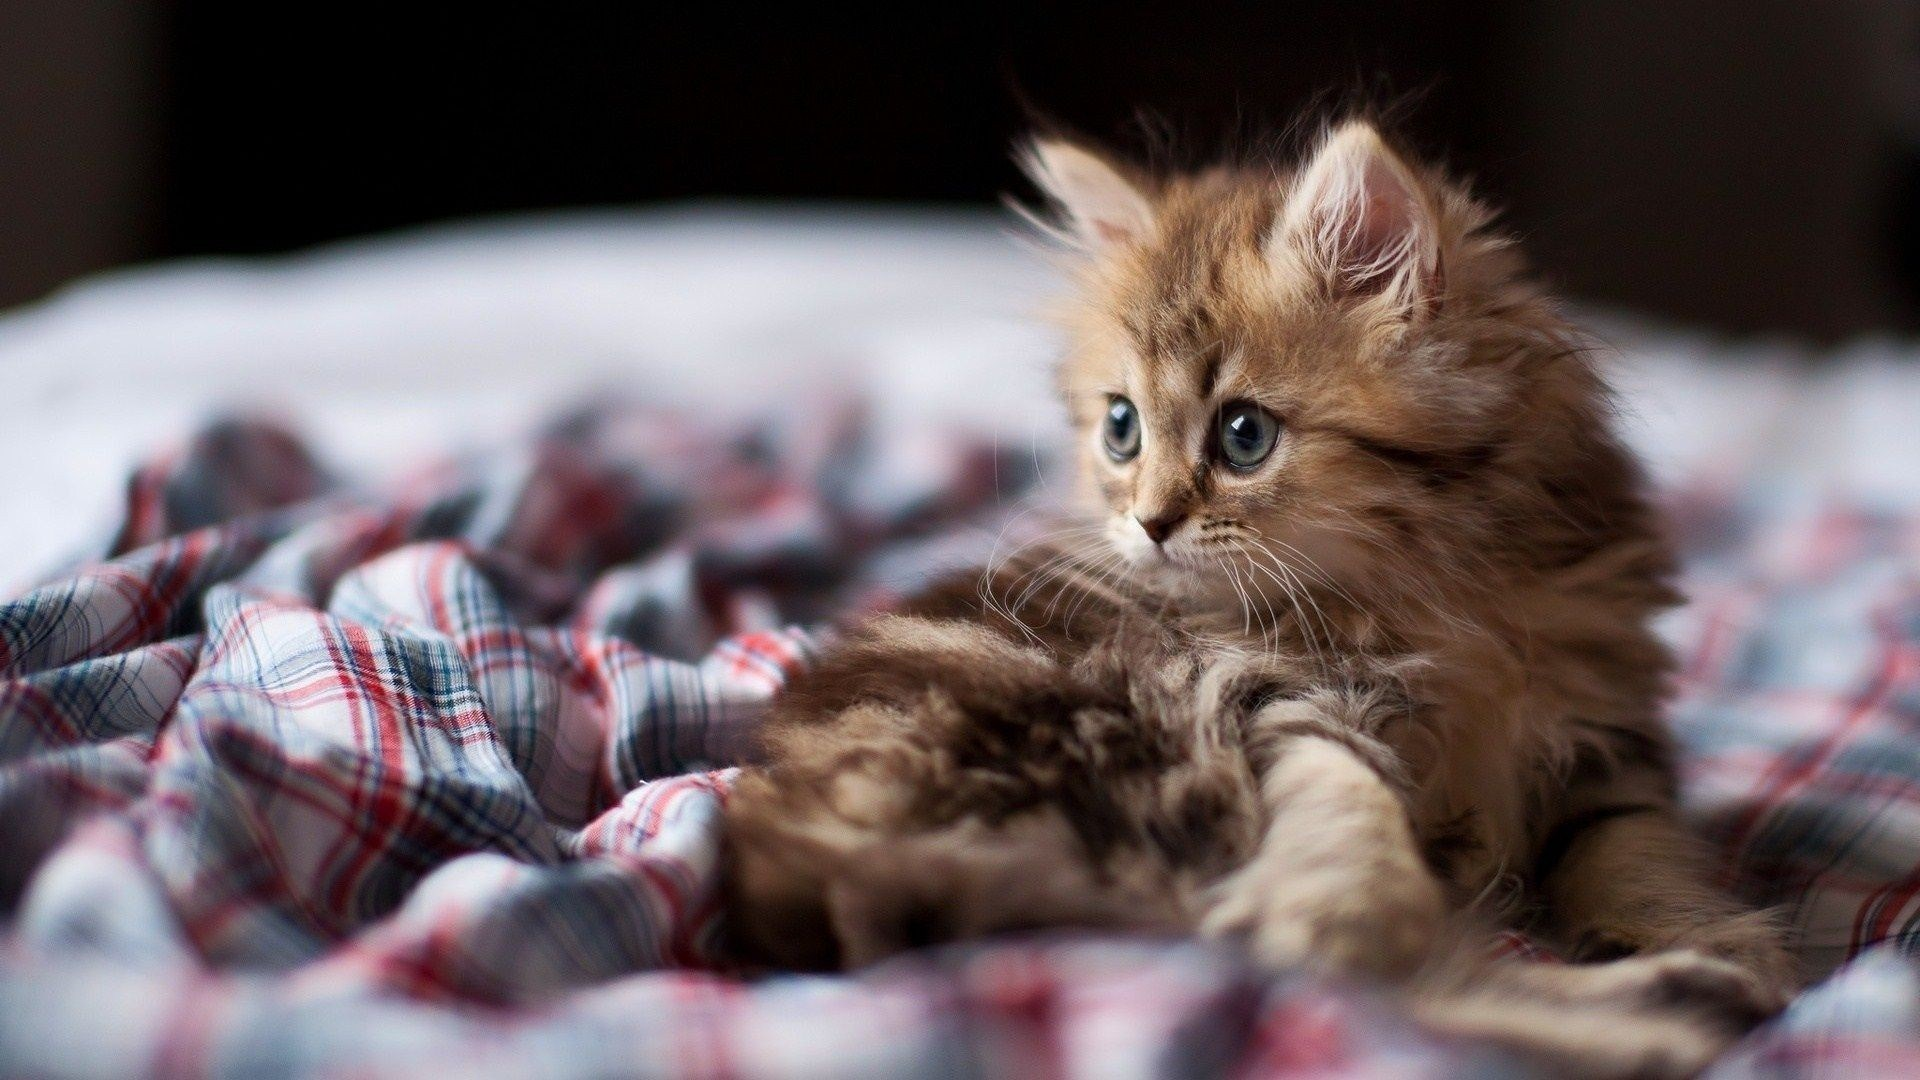 Funny kitten wallpapers hd desktop wallpapers 4k hd - Kitten wallpaper hd ...